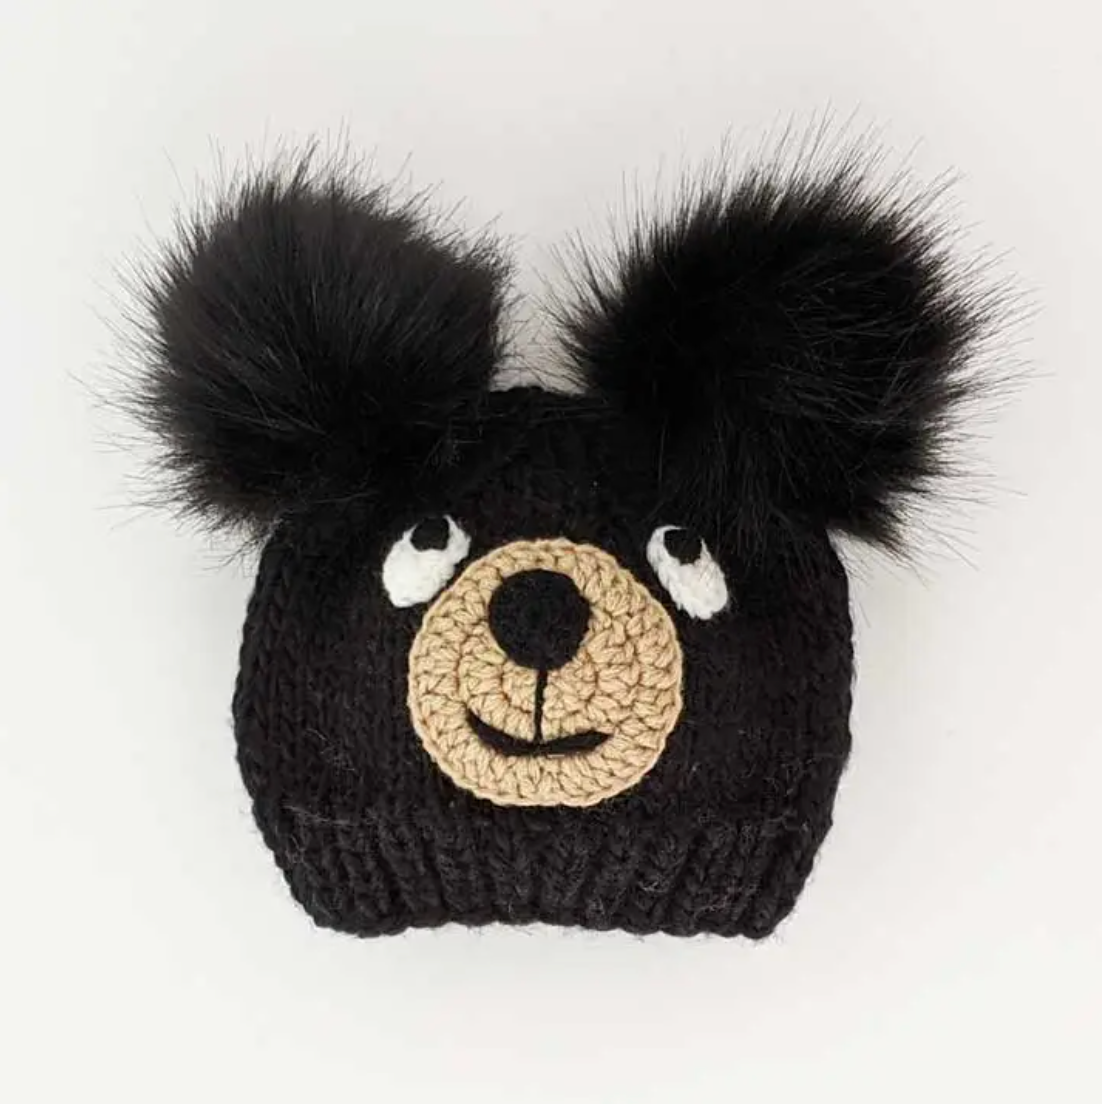 Huggalugs Black Bear Knit Beanie Hat